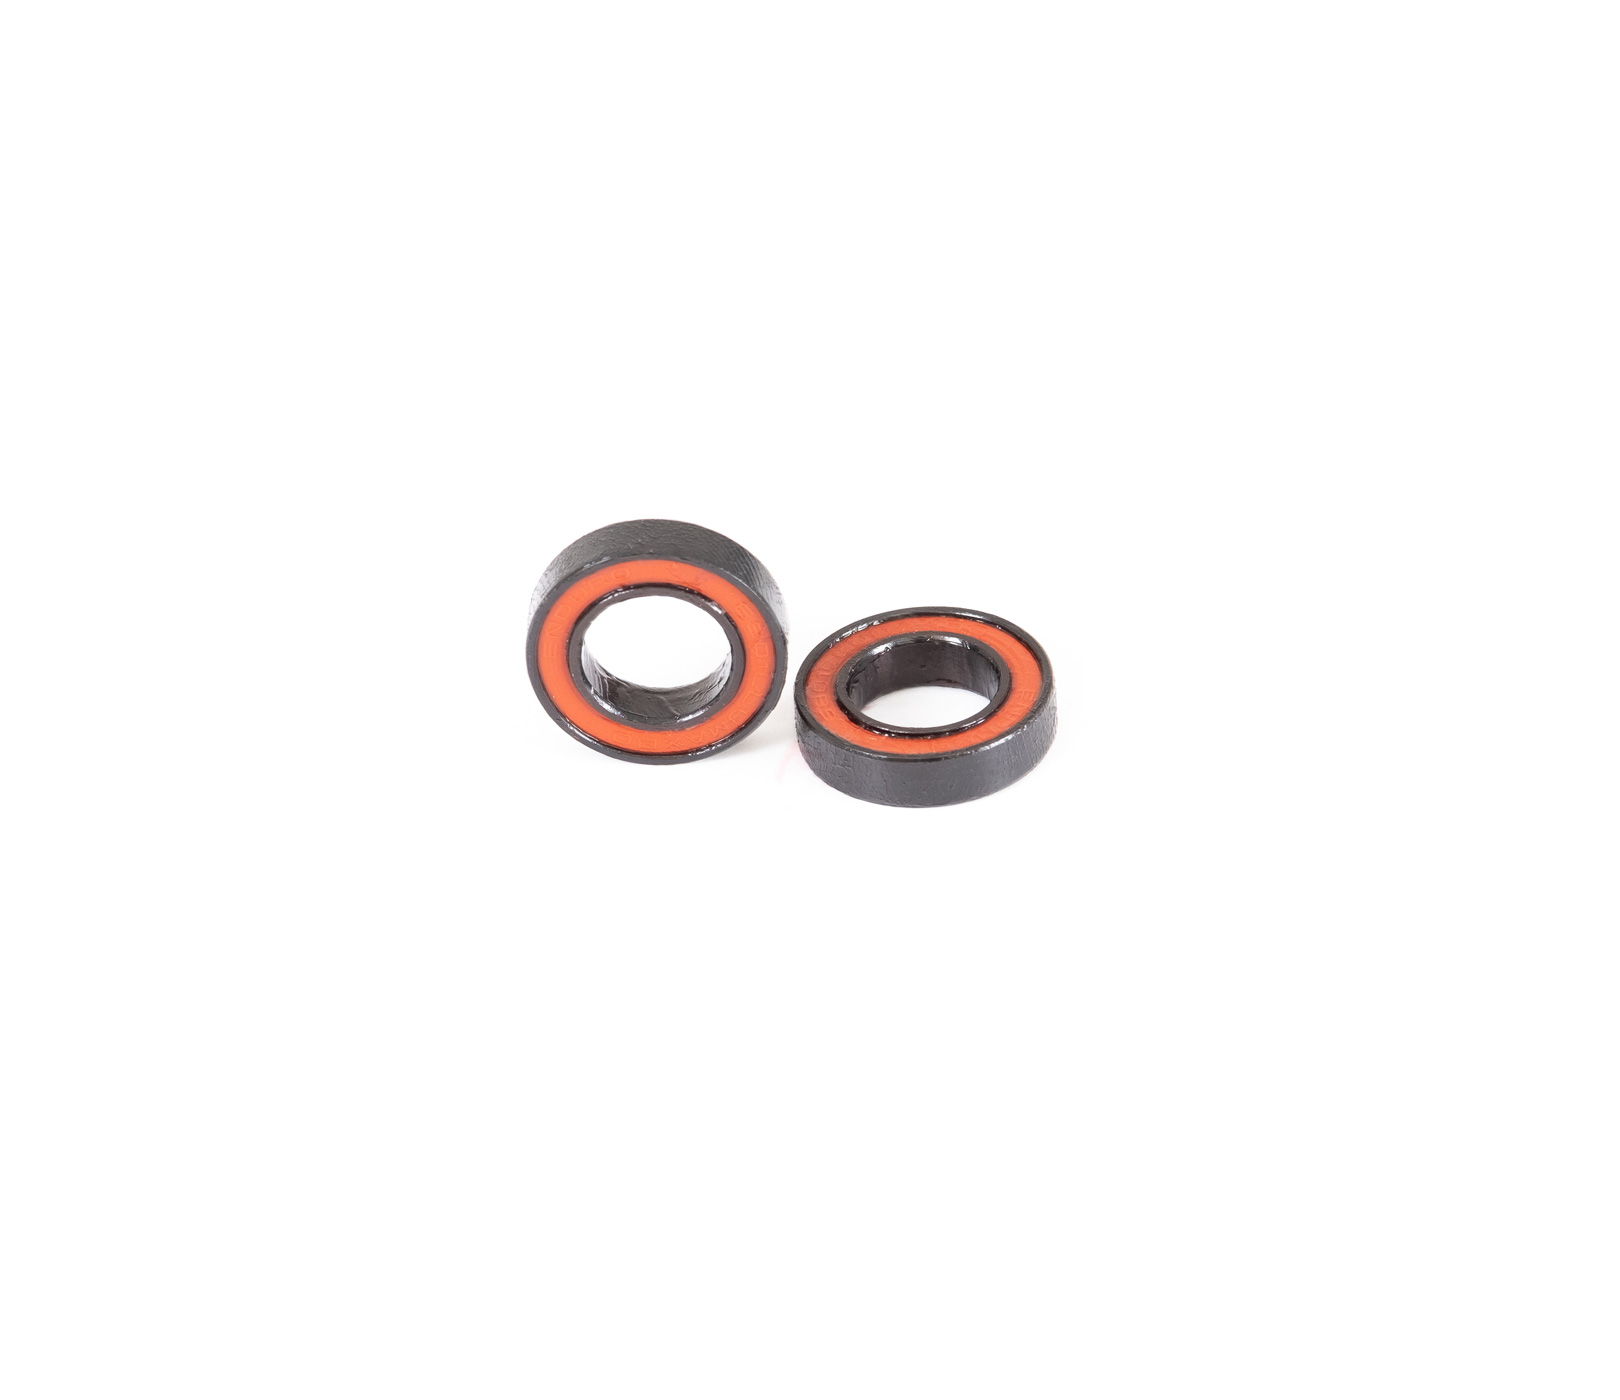 OIZ HYDRO 2020 MAIN PIVOT BEARING KIT